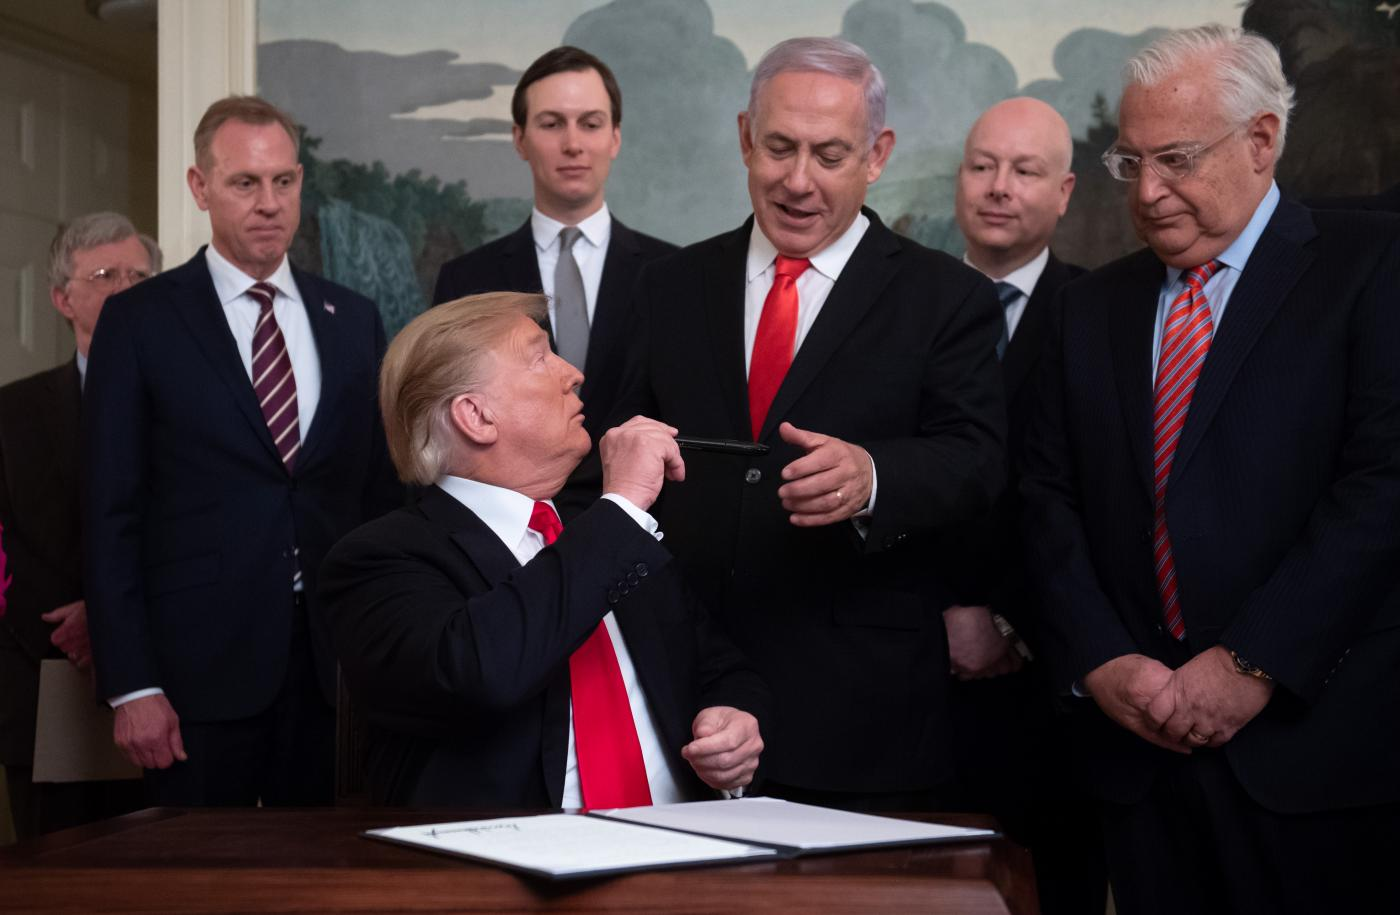 This image of Donald Trump handing Benjamin Netanyahu a pen was used in J Street's promotion